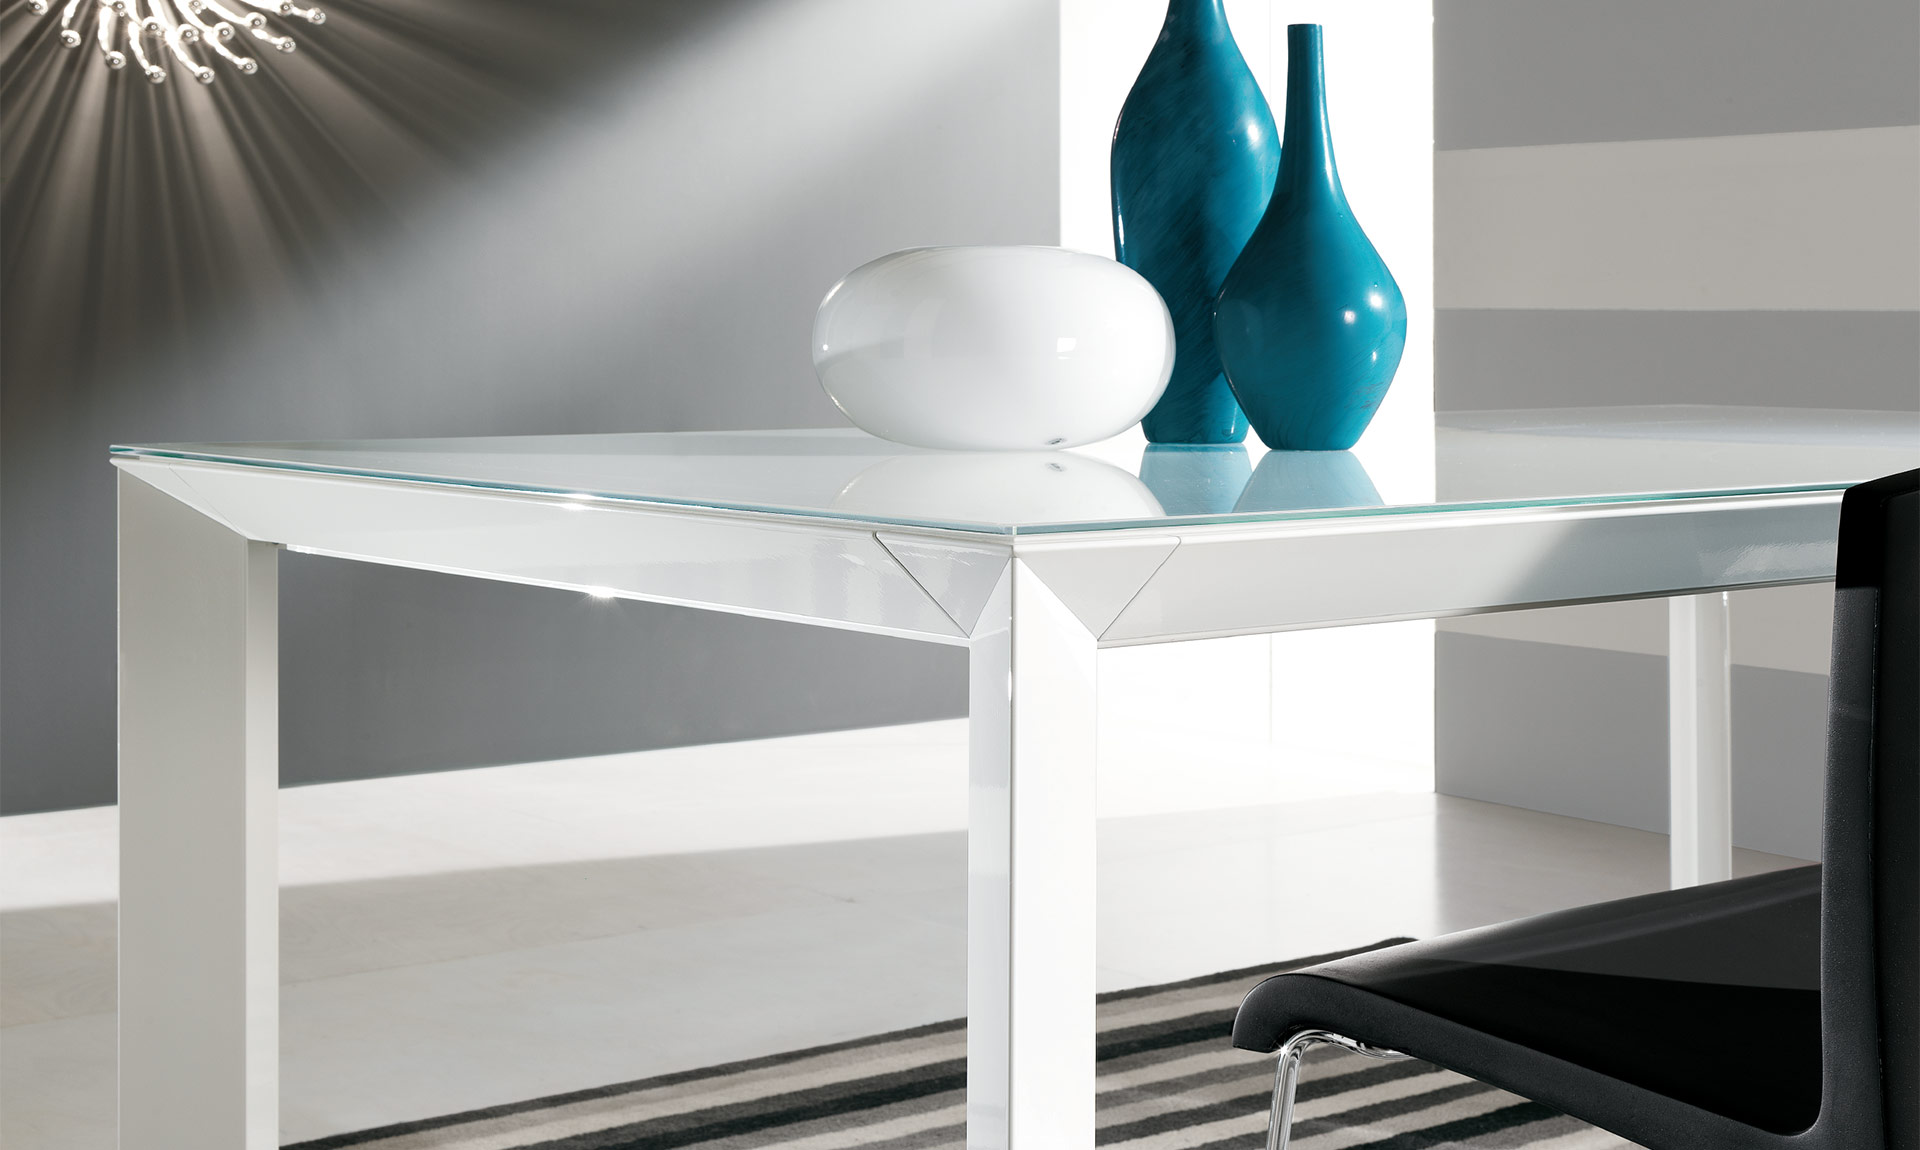 Riflessi MANHATTAN - Contemporary Italian dining table-lacquered-wooden-table-manhattan-riflessi-detail-6